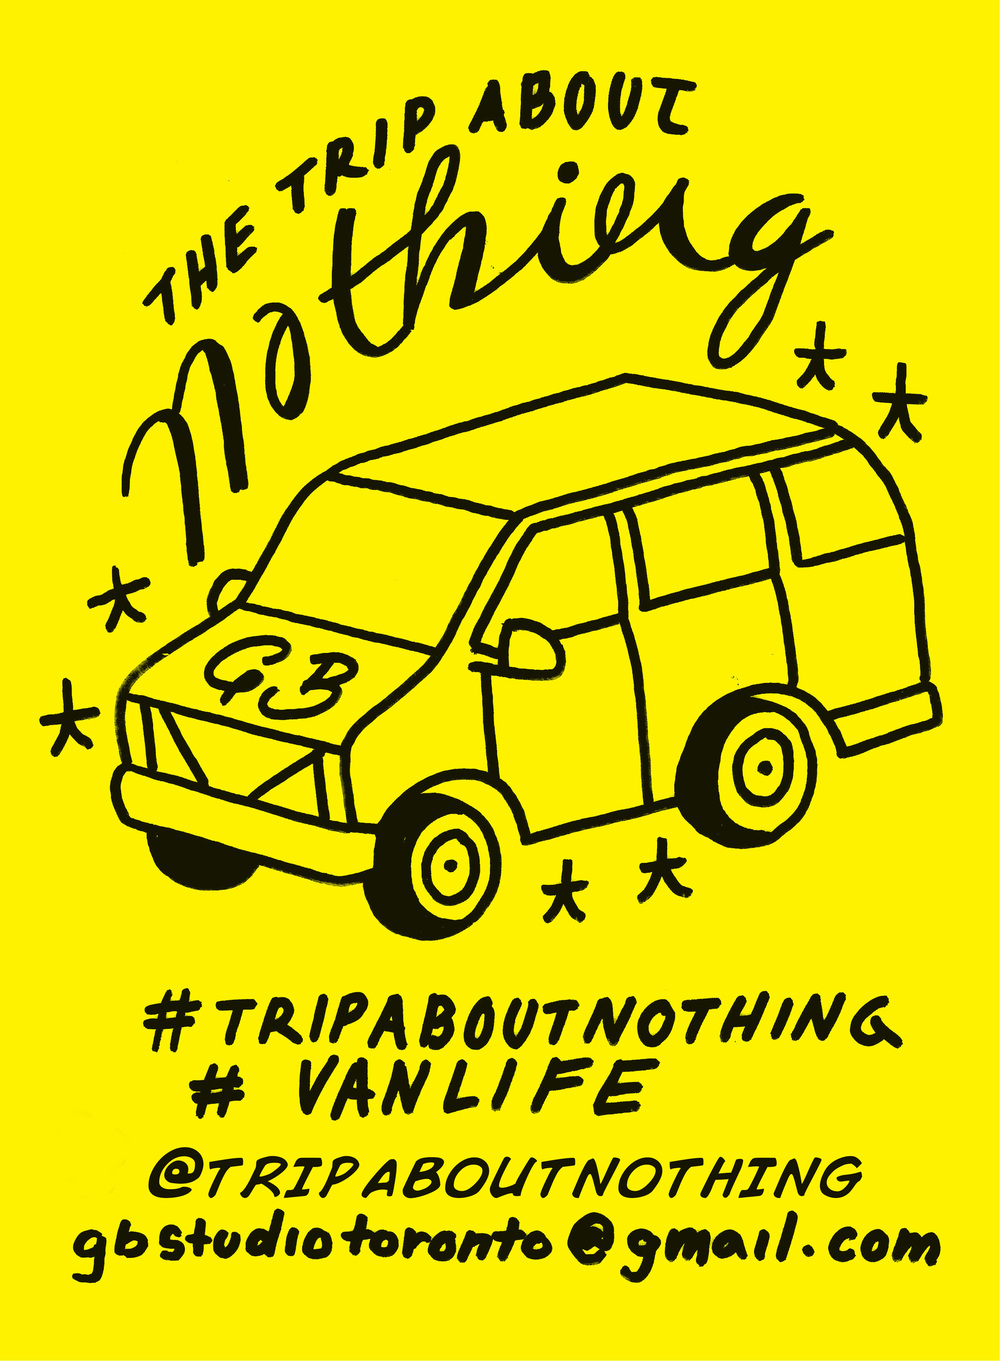 I have been seeking out vans scattered around Toronto and putting these flyers on the dashboards to spread the word about my project. Vanlife and the mobile community seem to really stick together so I figured they'd be interested in keeping up with a fellow vanlifer!